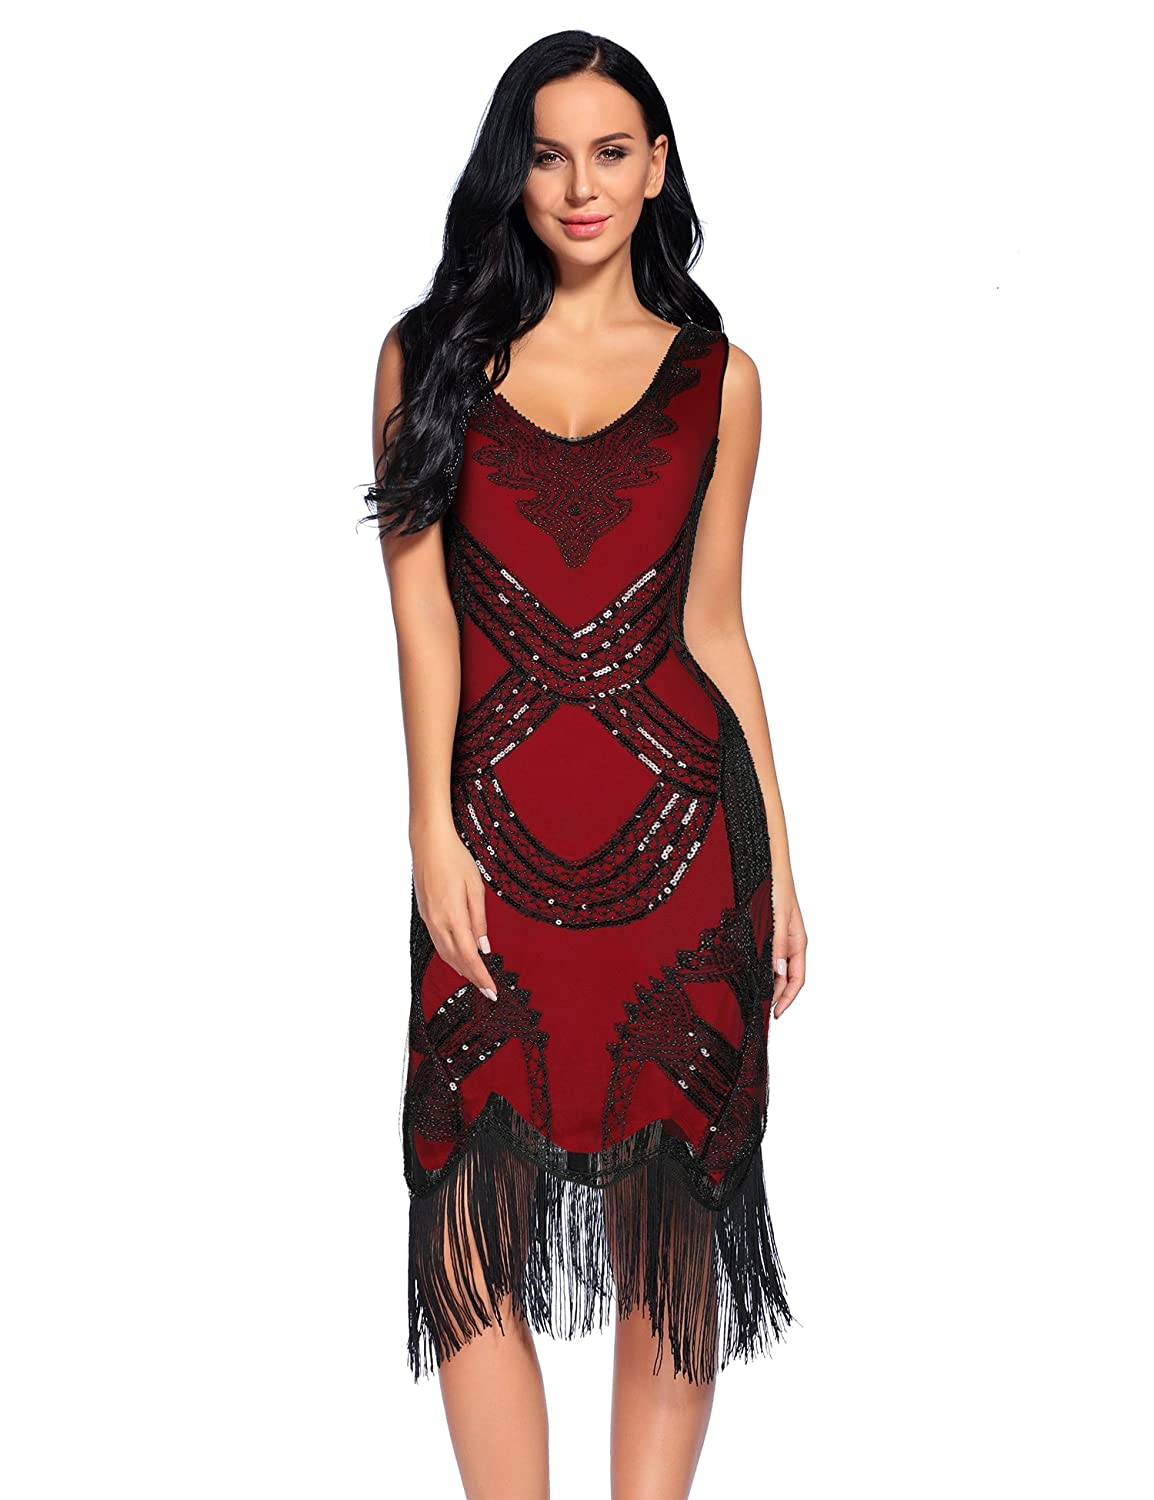 Flapper Girl Women's 1920s Gatsby V Neck Sequin Beads Fringed Cocktail Hem Flapper Dress